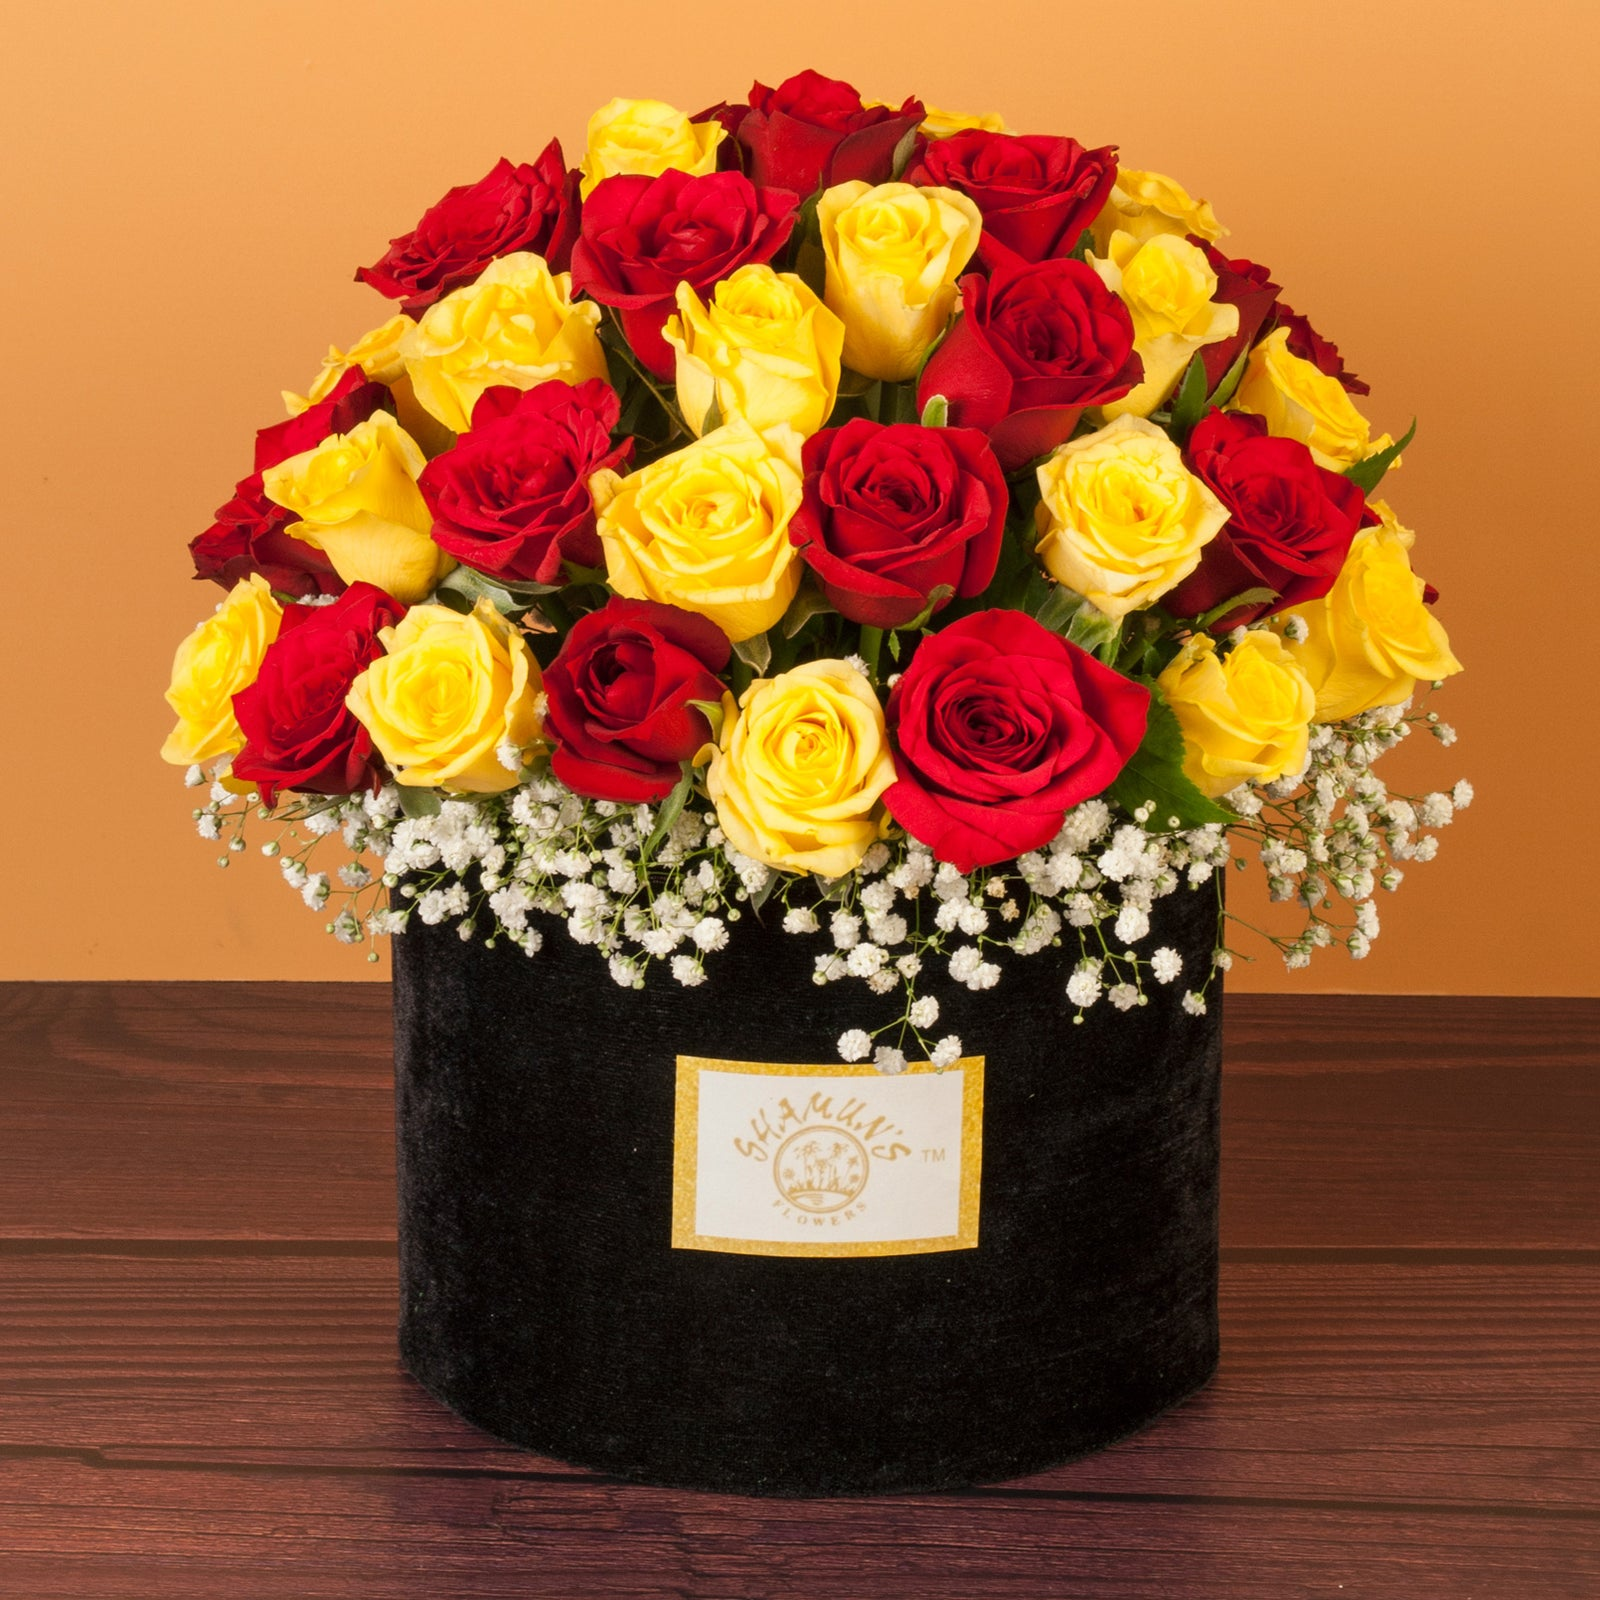 Red & Yellow Roses Delivered In A Hat Box